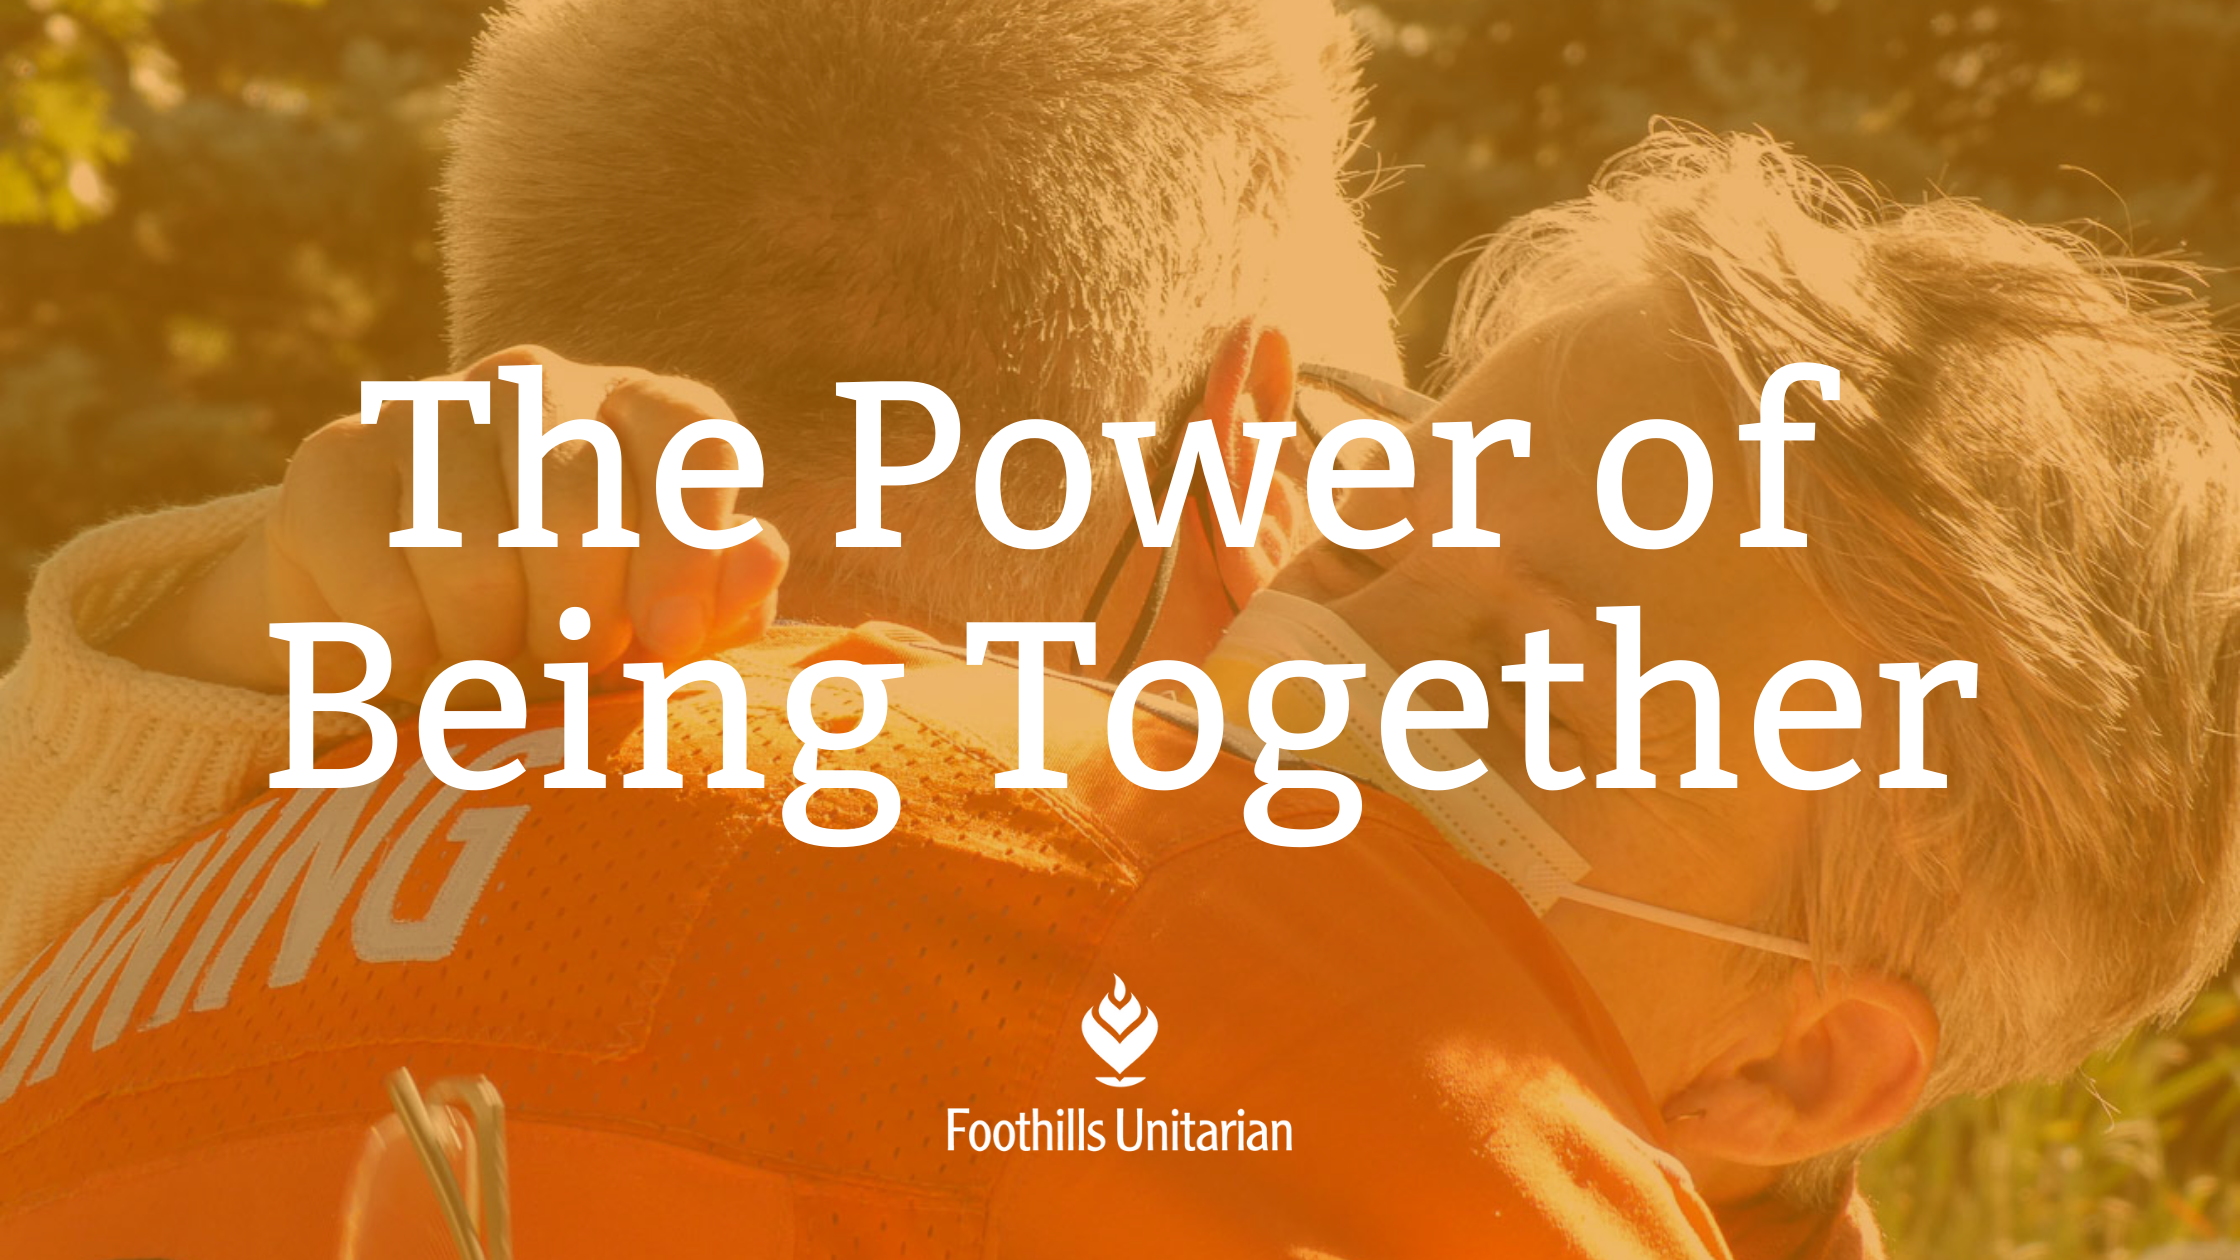 The Power of Being Together